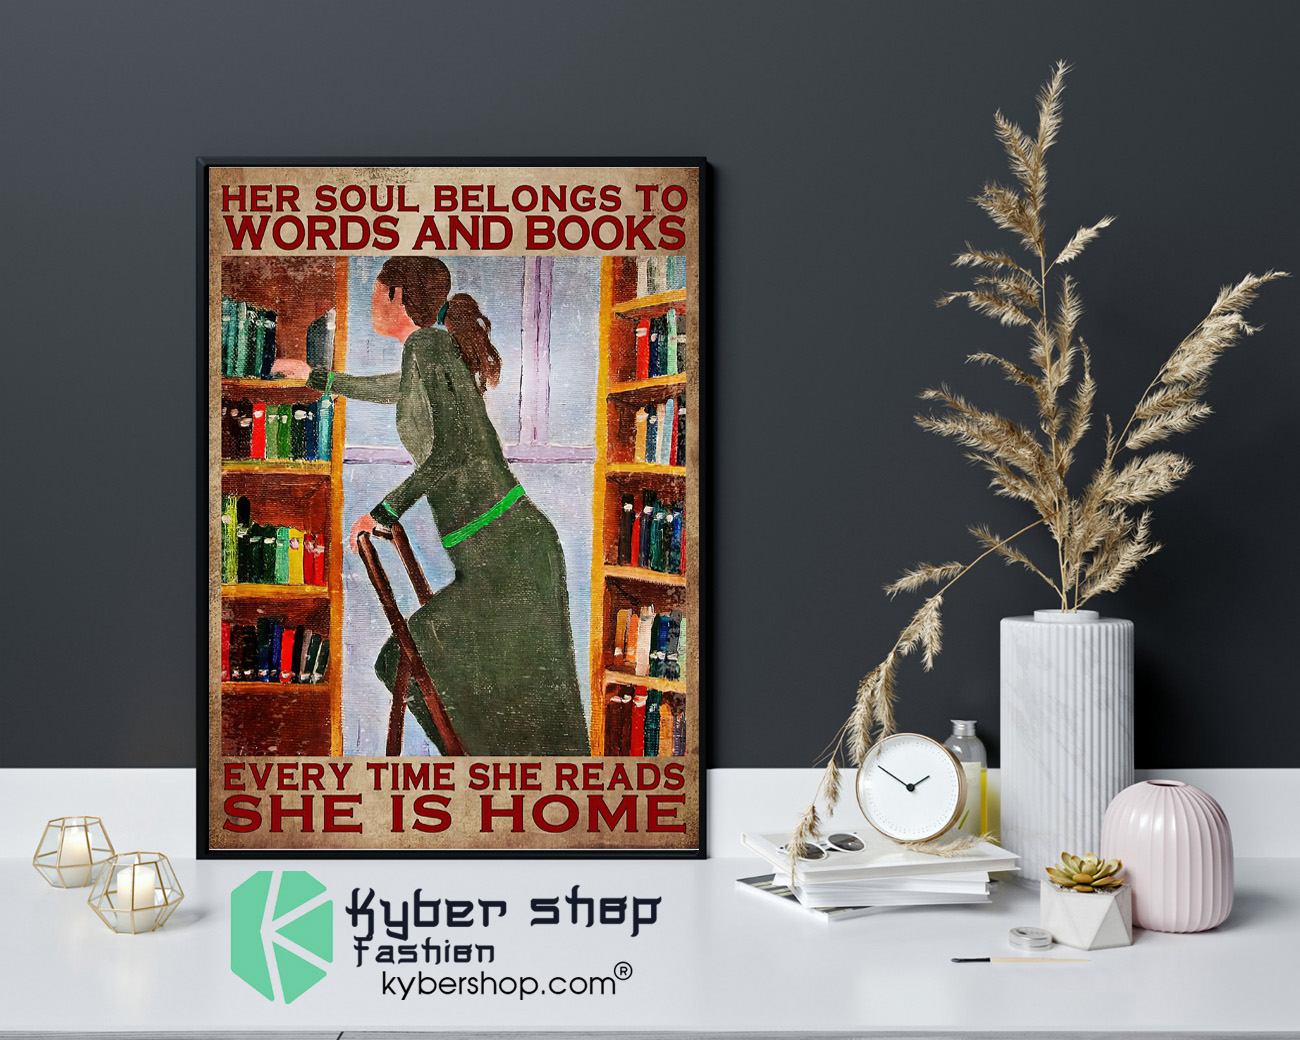 Her soul belongs to words and books every time she reads she is home poster 4